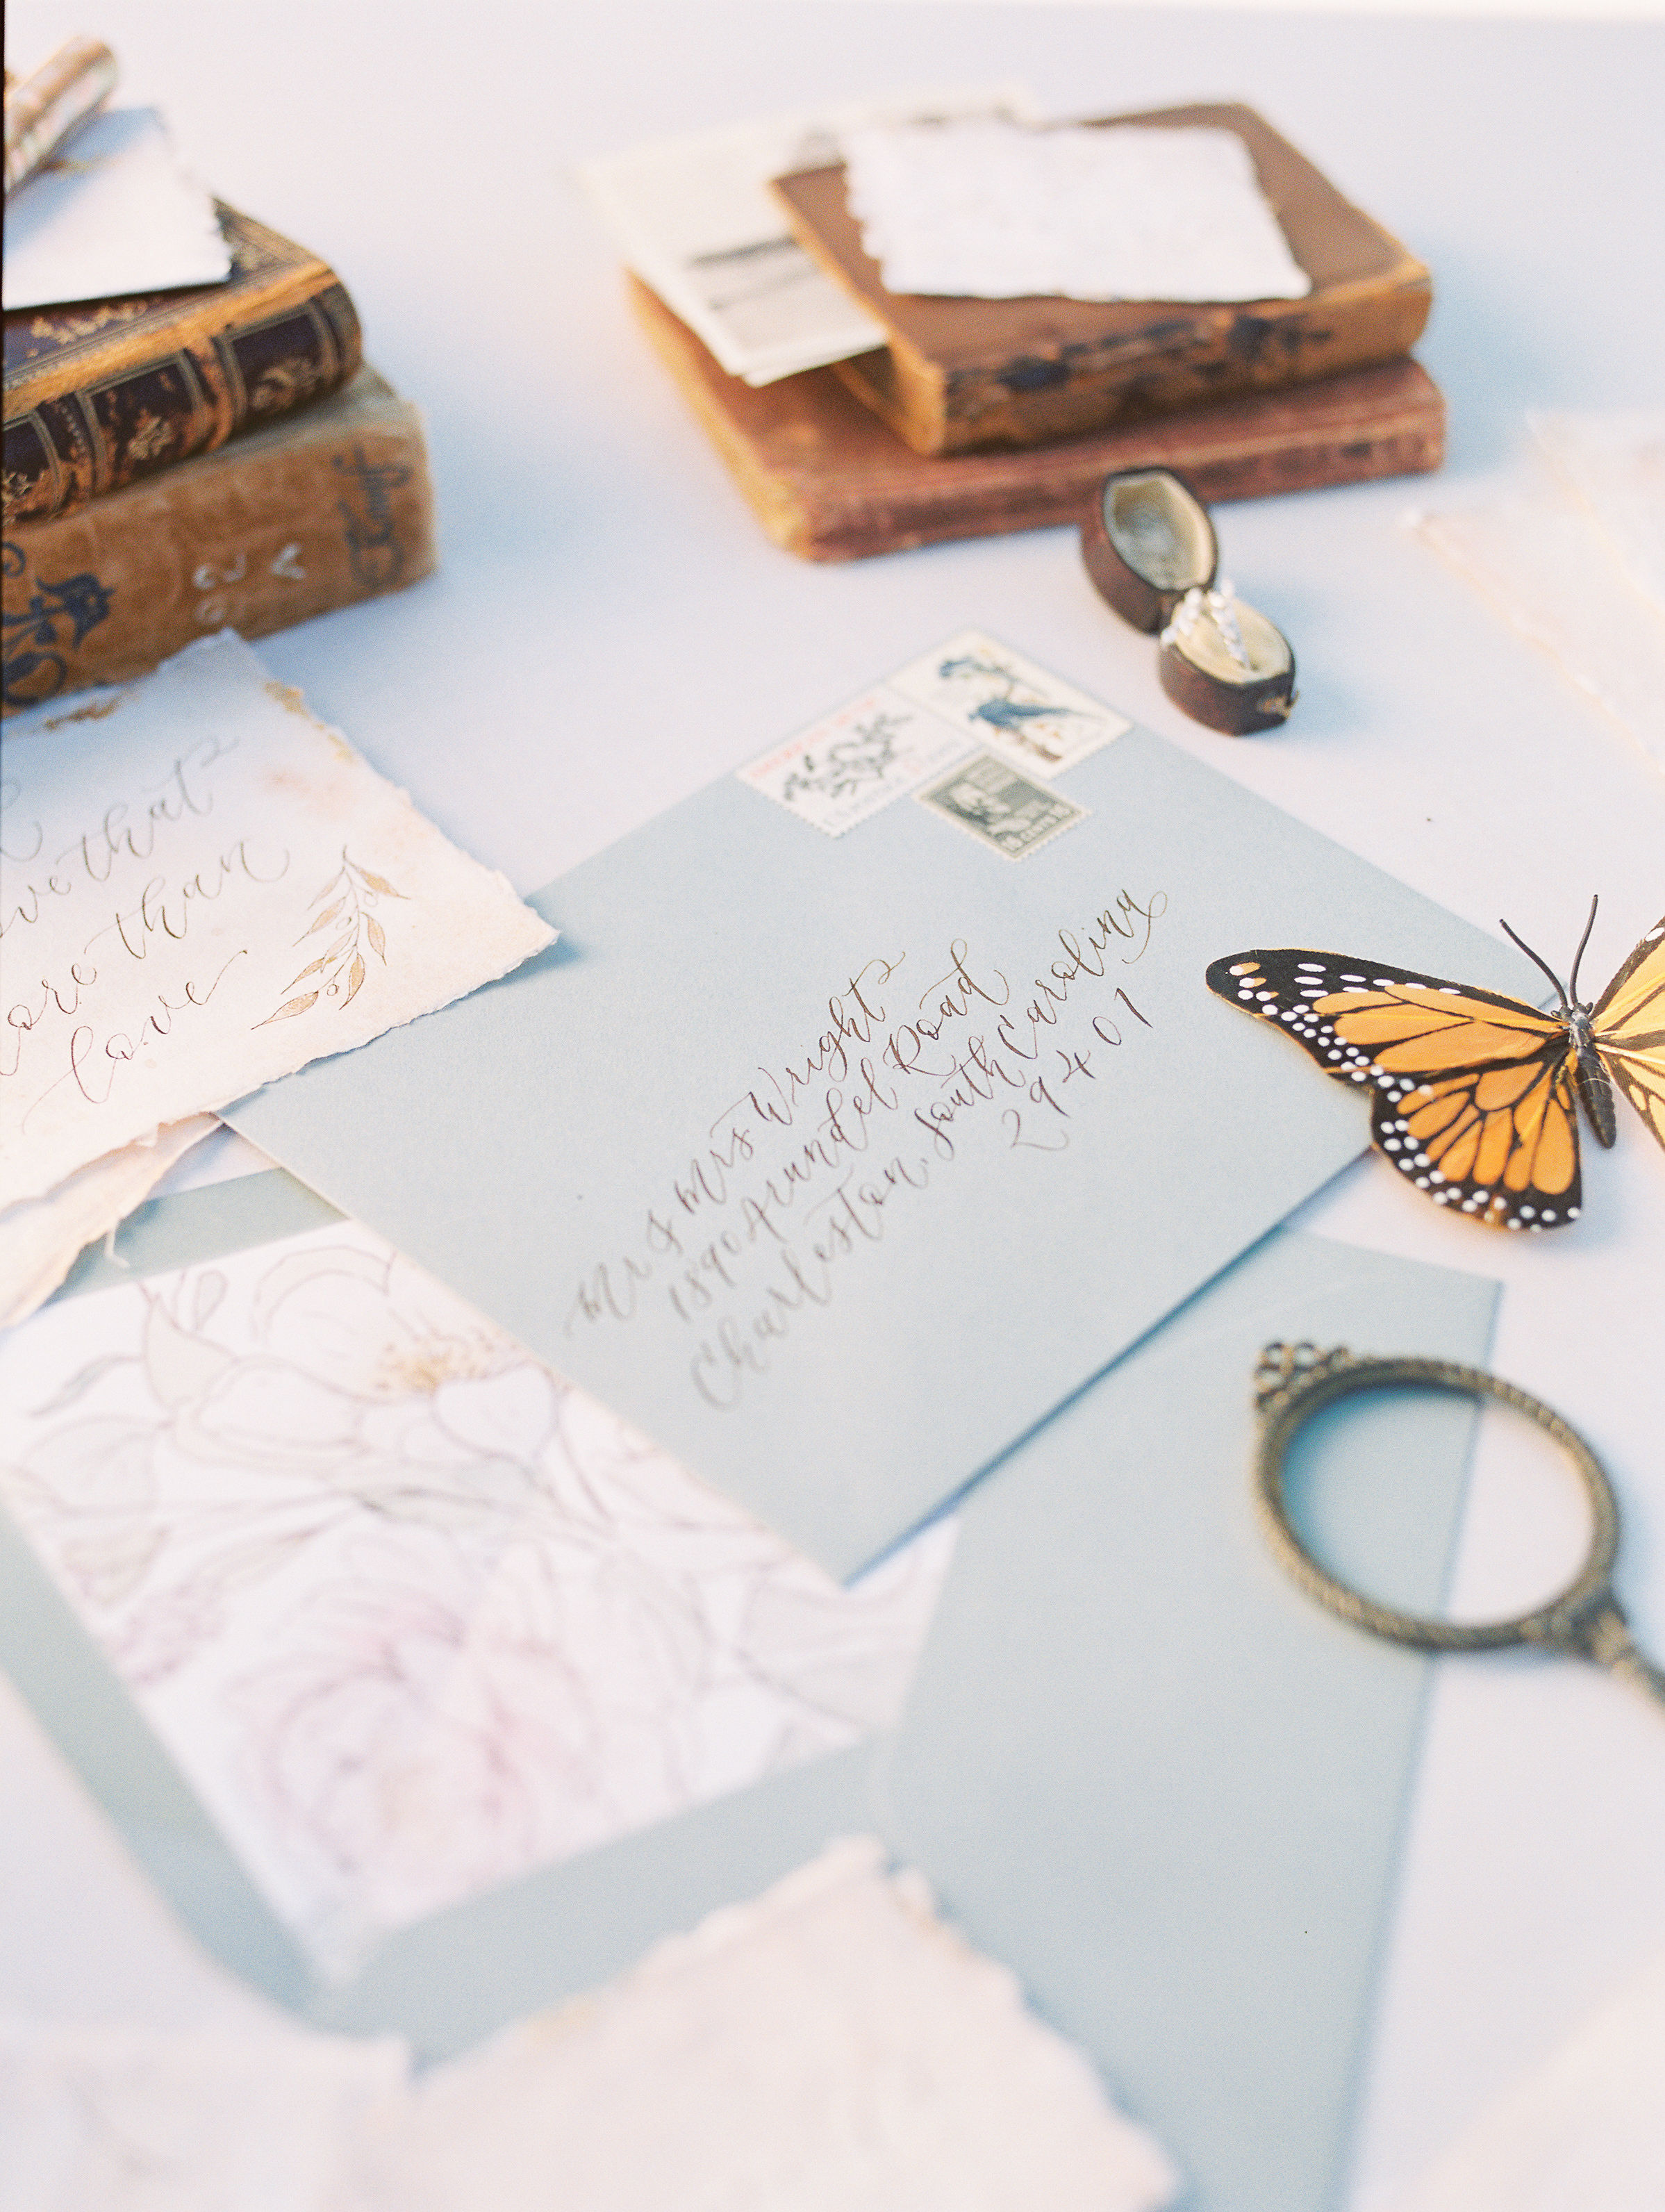 StephanieWeberPhotography – Vintage Love Letter Shoot with Envelope Calligraphy by Sam Allen Creates